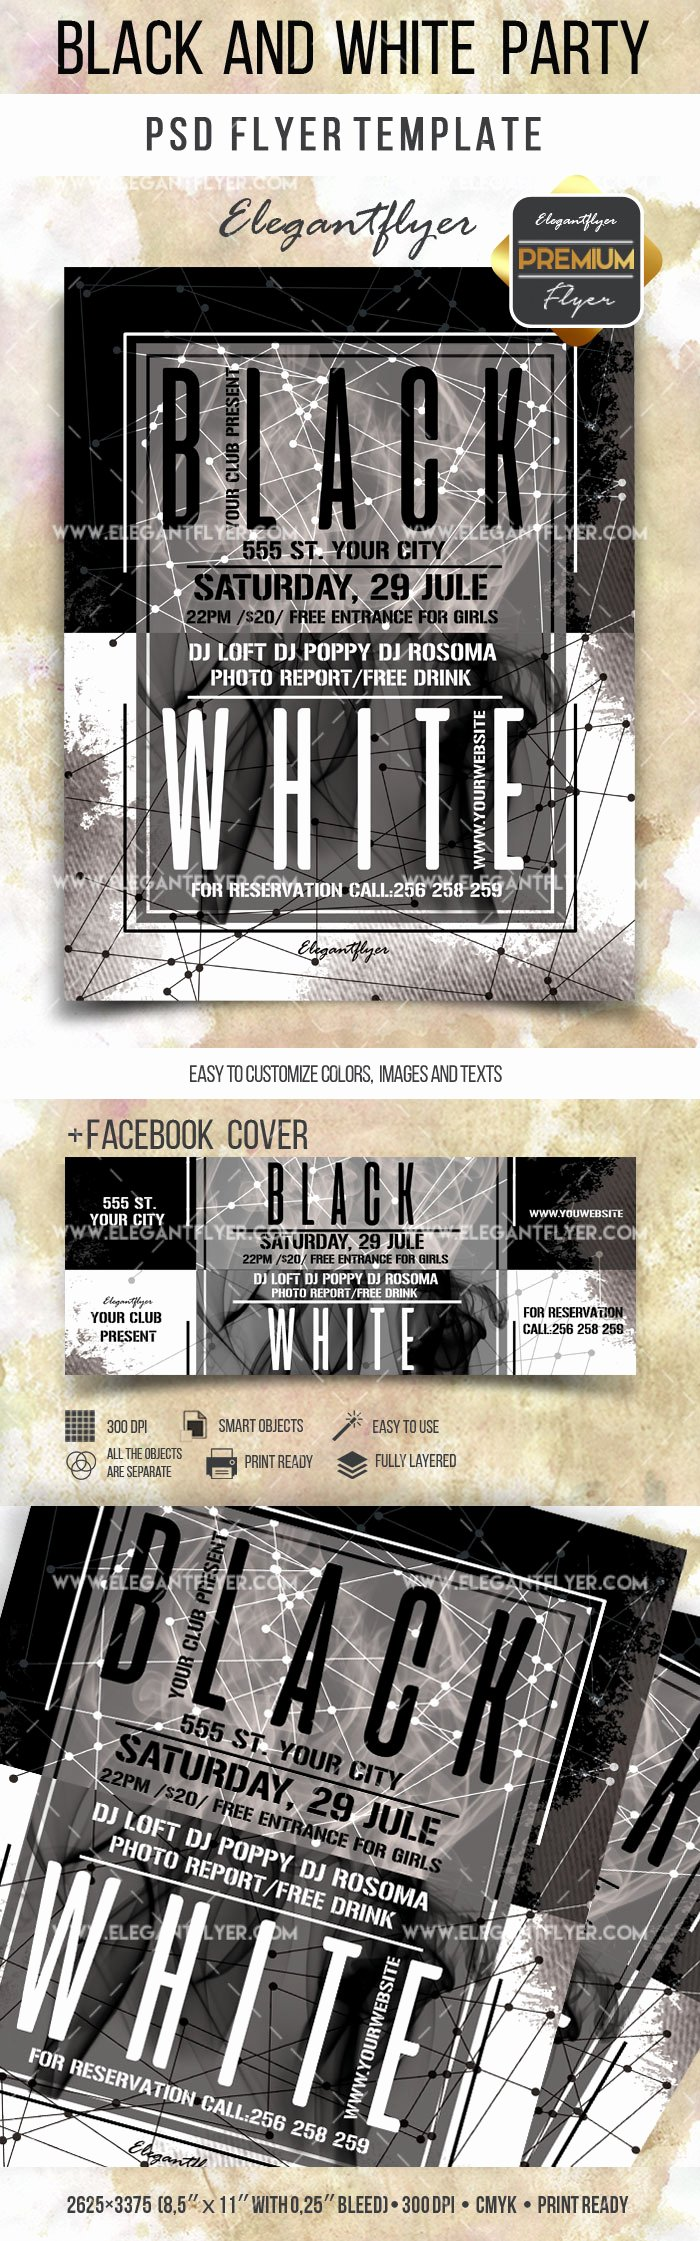 Black and White Flyer Templates New Flyer Template for Black and White theme Party – by Elegantflyer